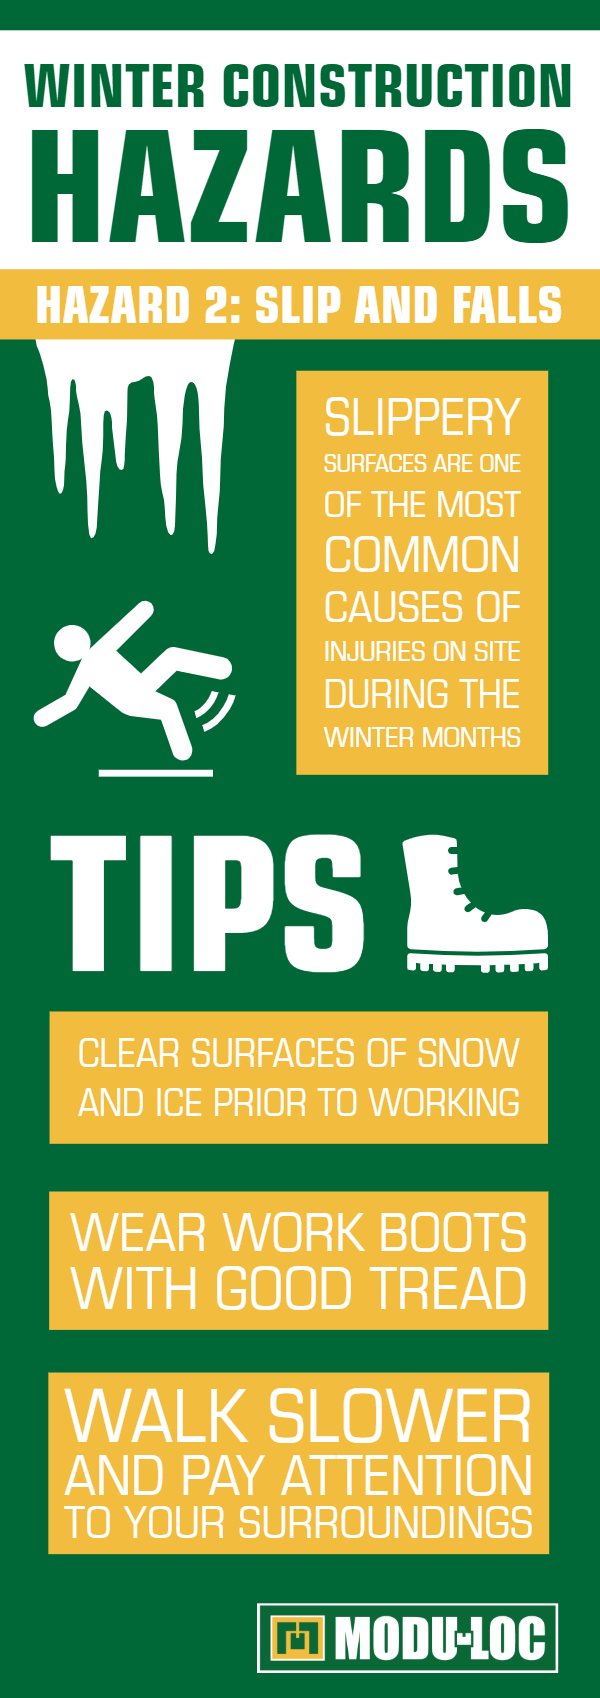 Winter Hazard #2: Slip and falls. Slippery surfaces are one of the most common causes of injuries on site during the winter months.